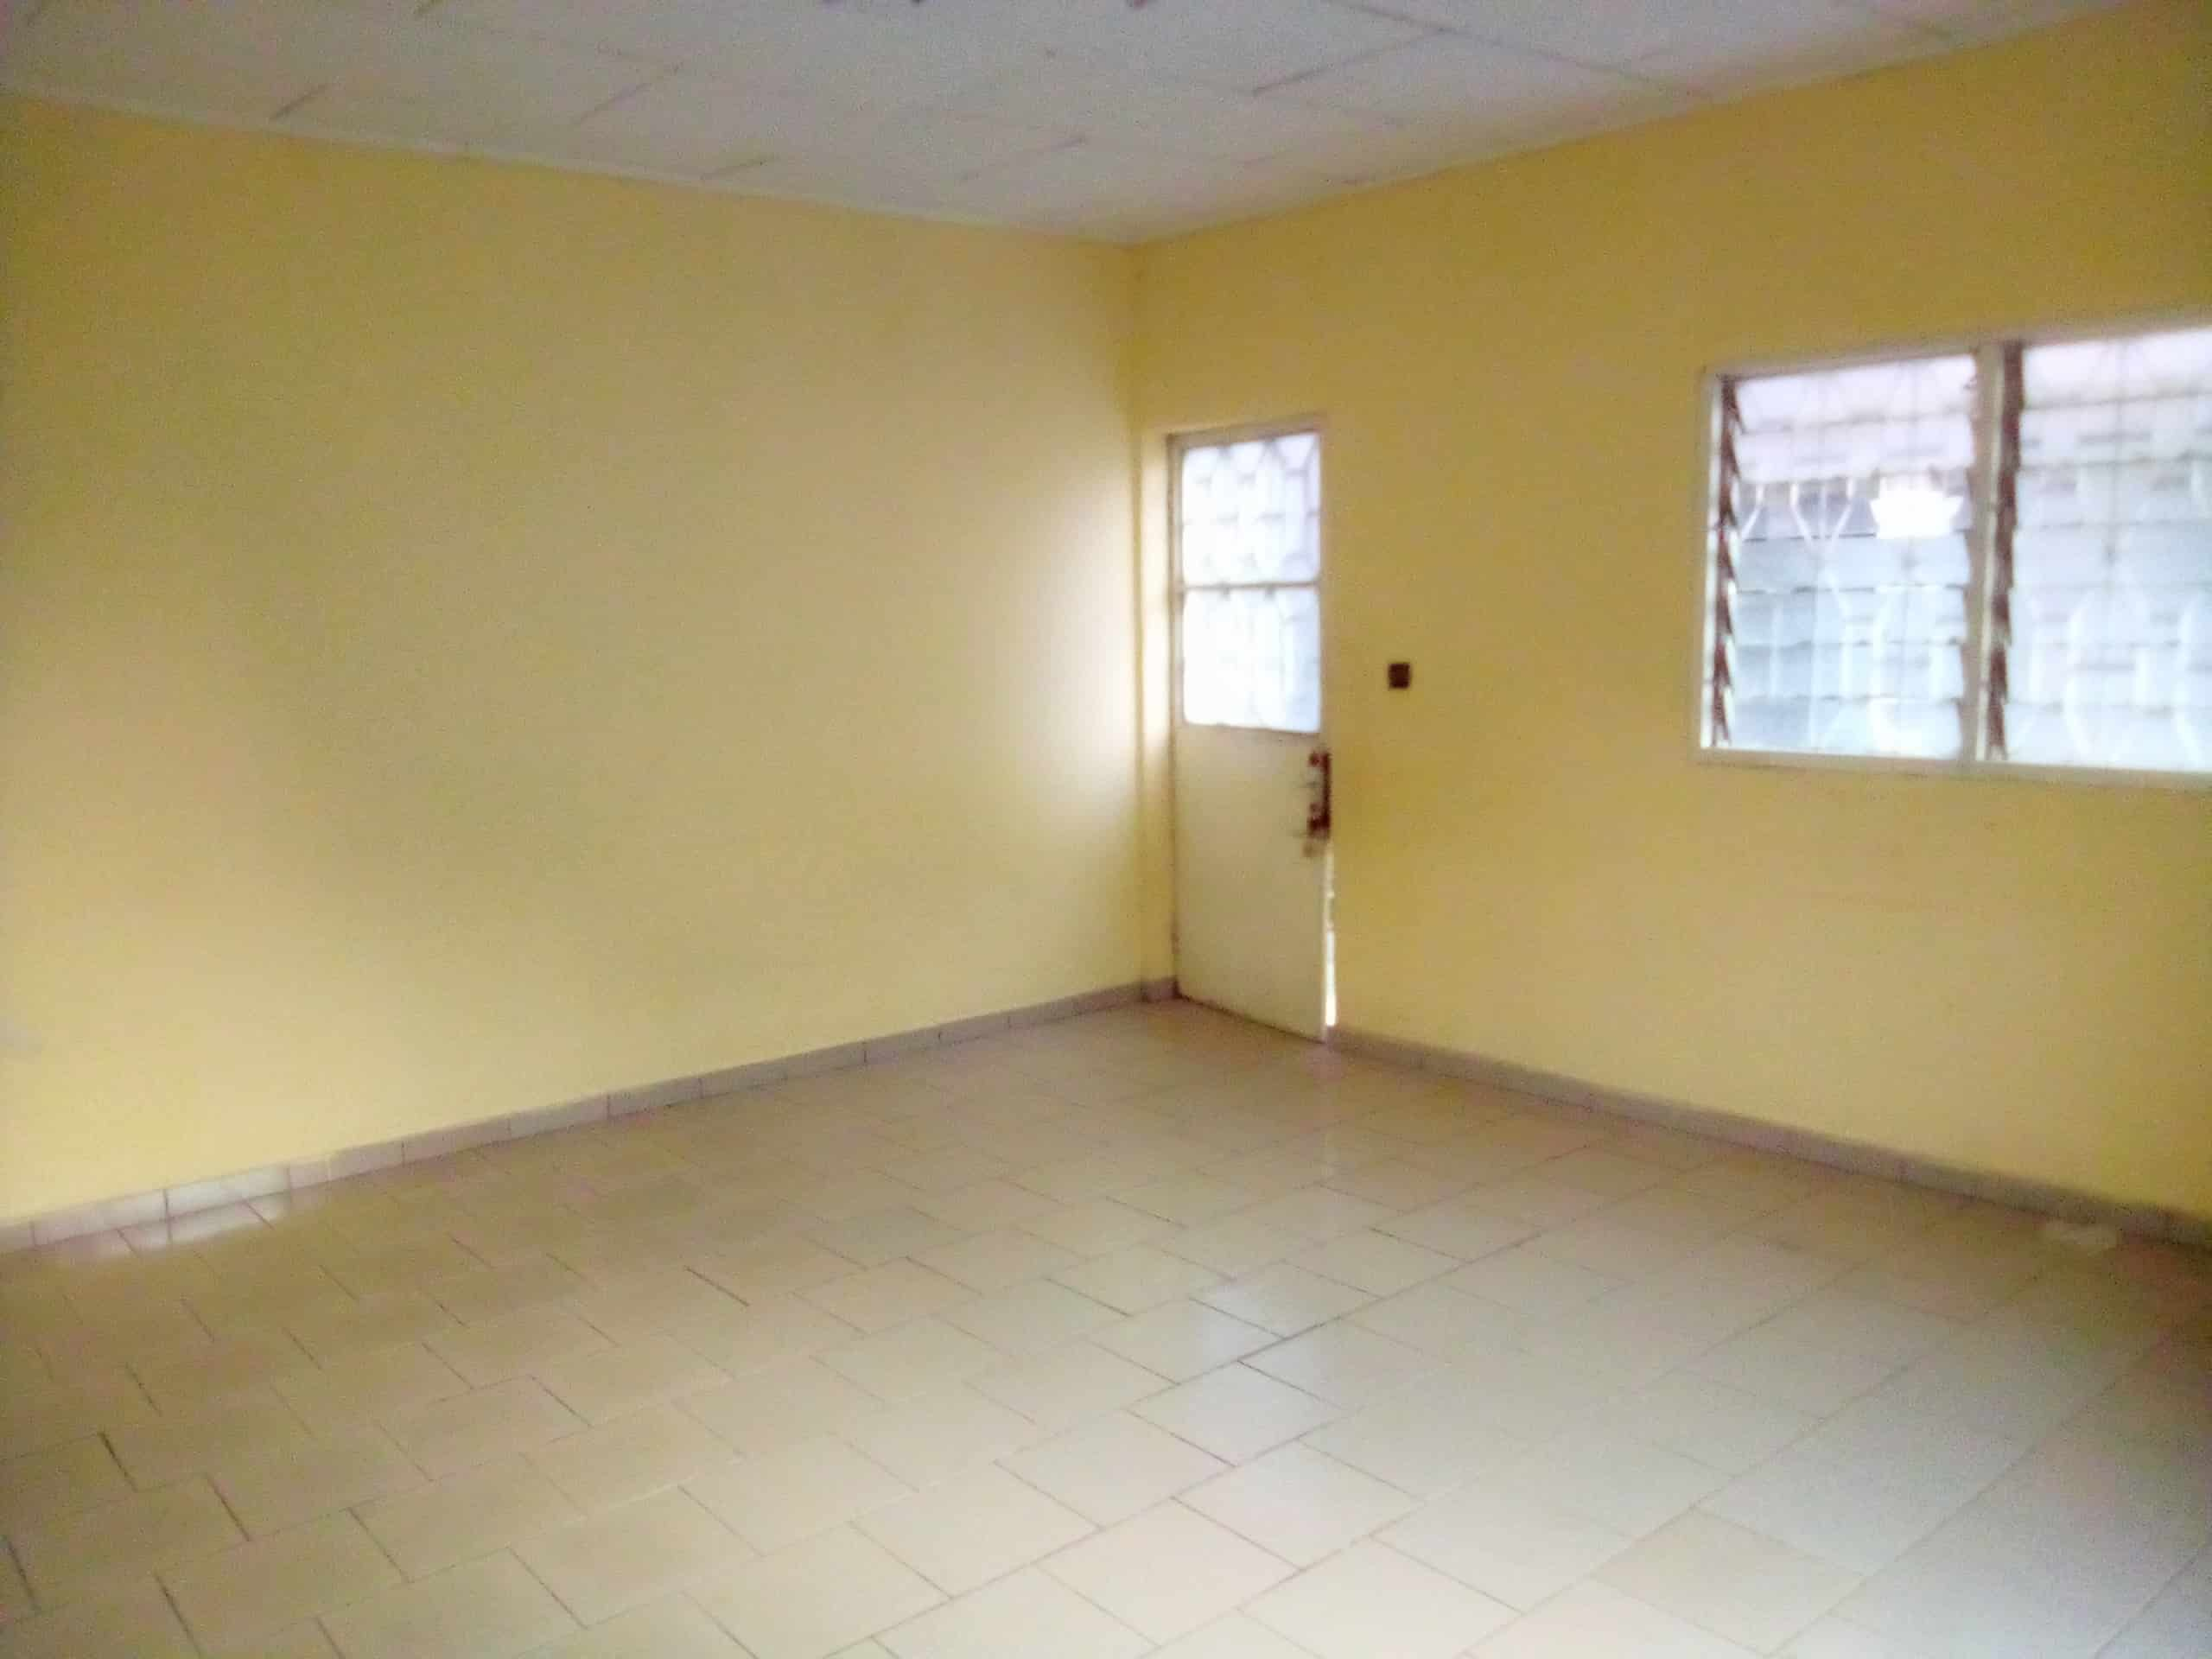 Apartment to rent - Douala, Kotto, bloc - 1 living room(s), 2 bedroom(s), 1 bathroom(s) - 80 000 FCFA / month